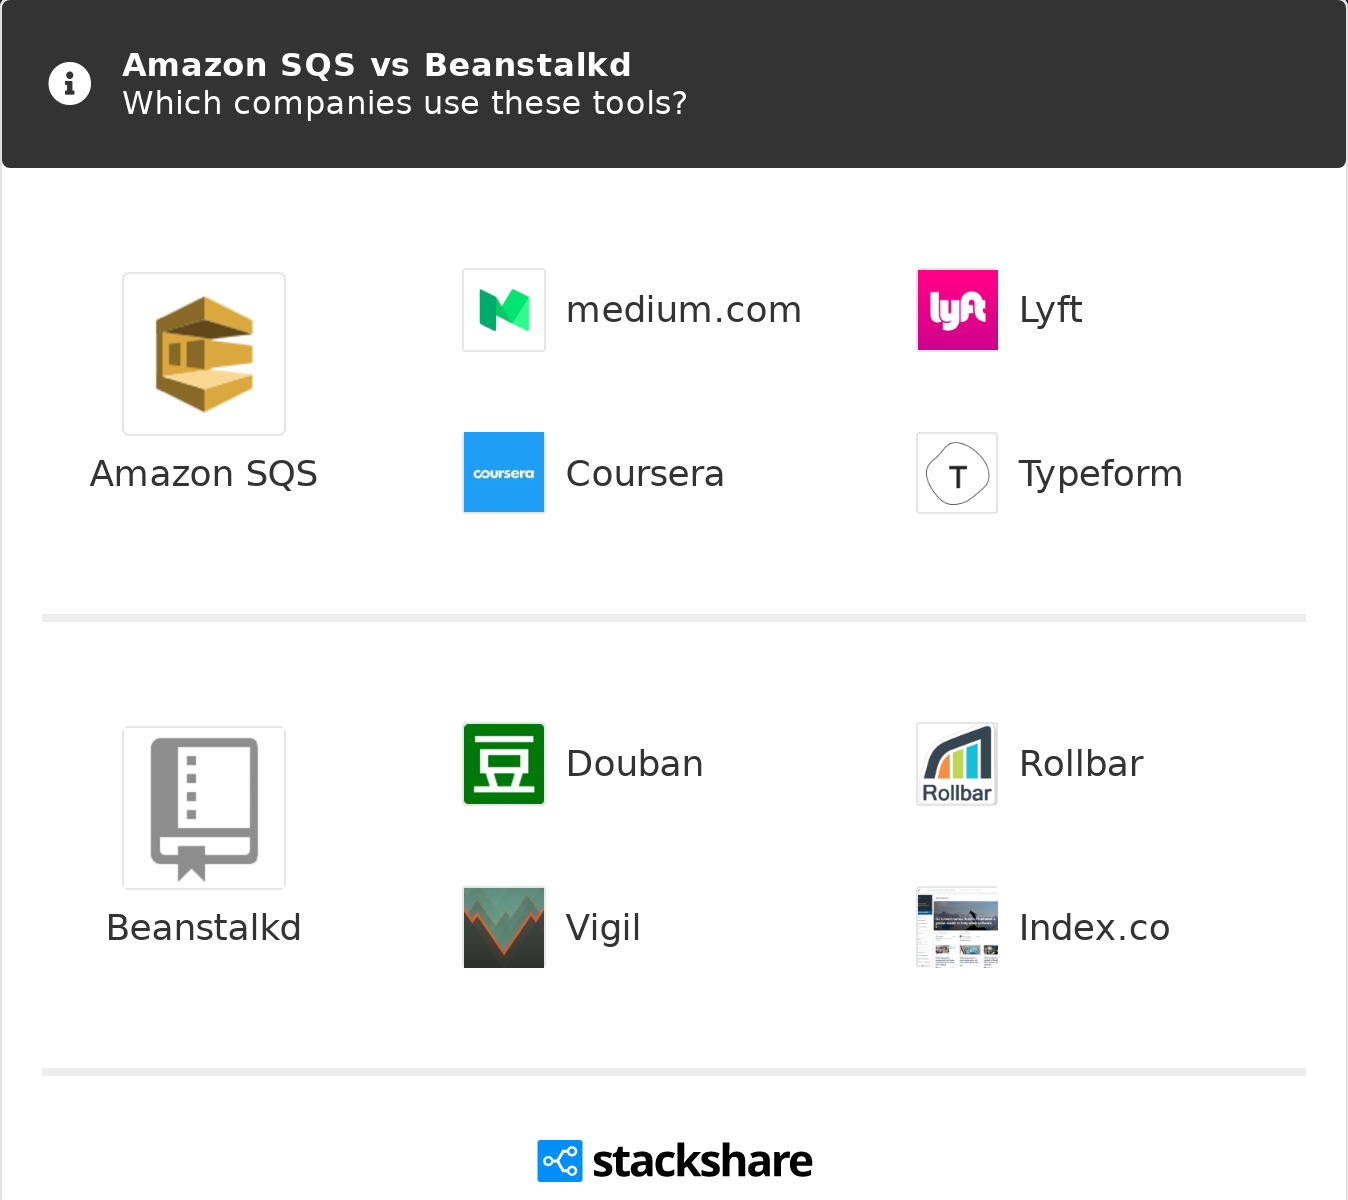 Amazon SQS vs Beanstalkd | What are the differences?